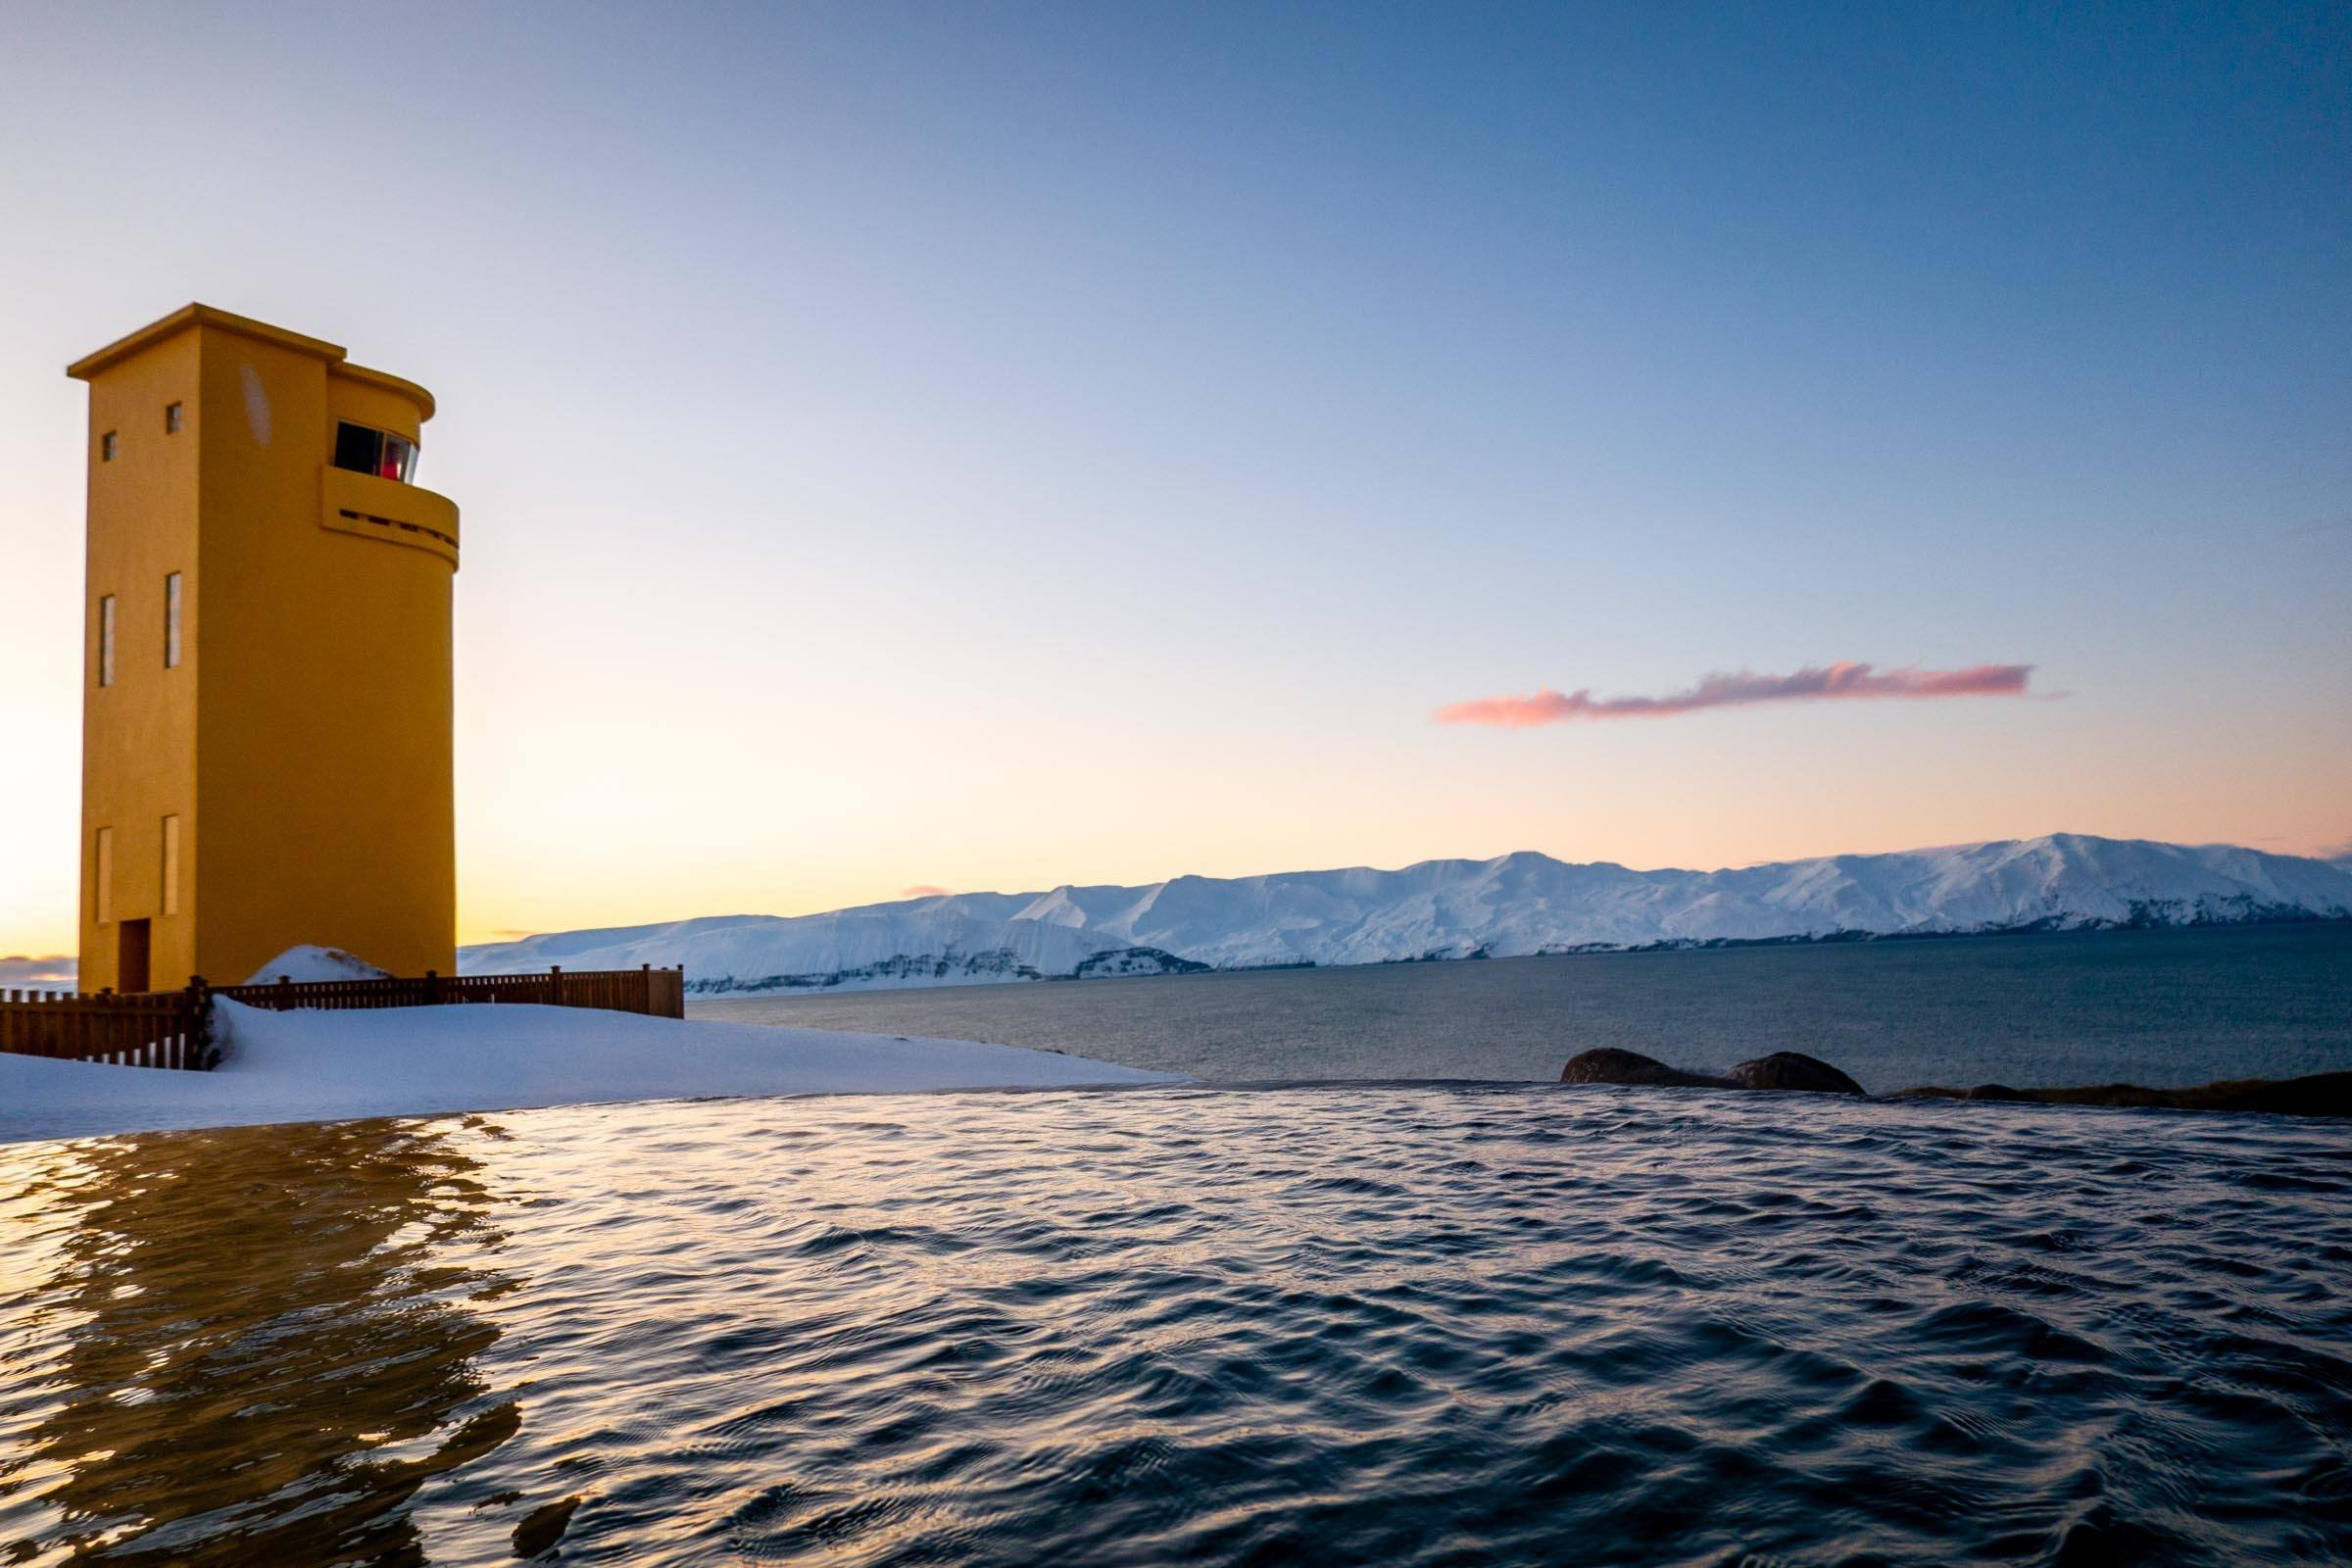 Iconic yellow lighthouse of Husavik next to the Iceland thermal baths of GeoSea